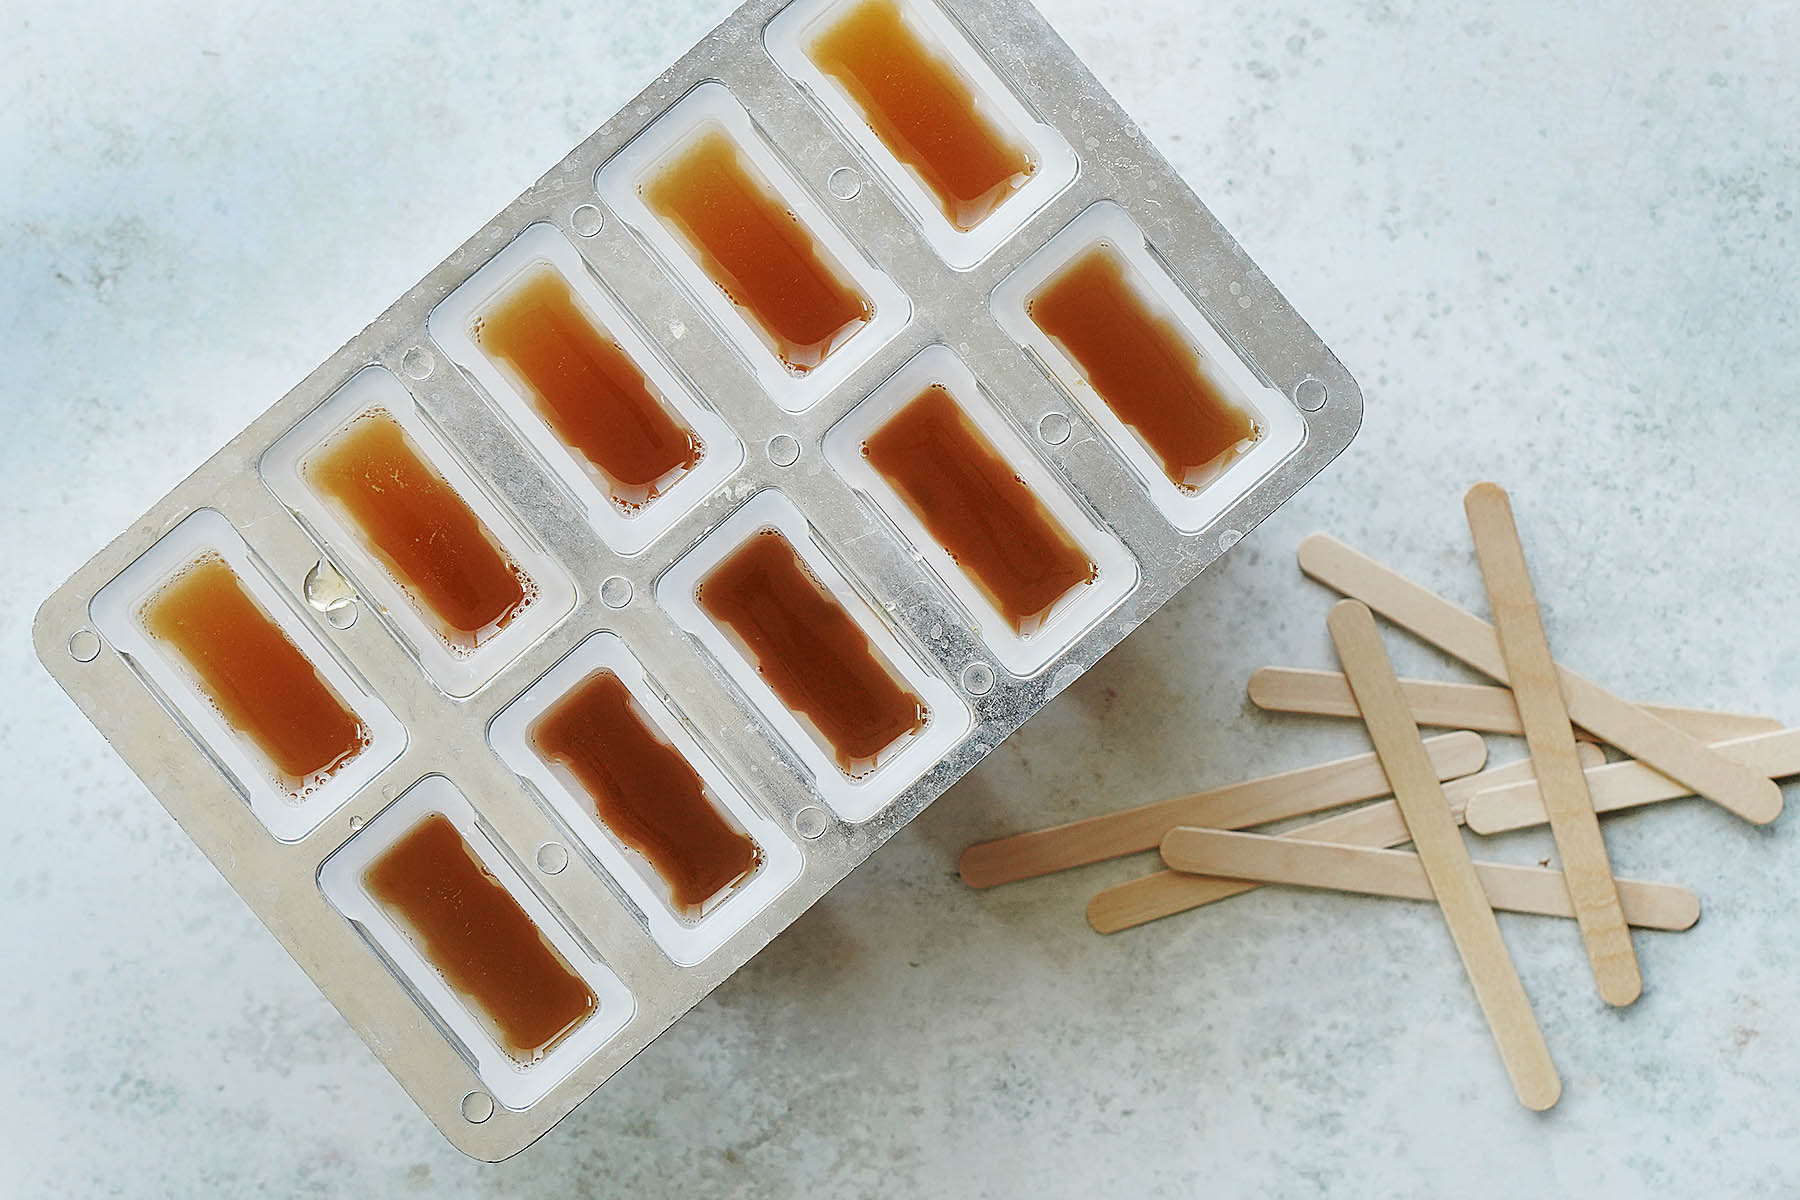 Popsicle molds with juice in them and popsicle sticks on the side.